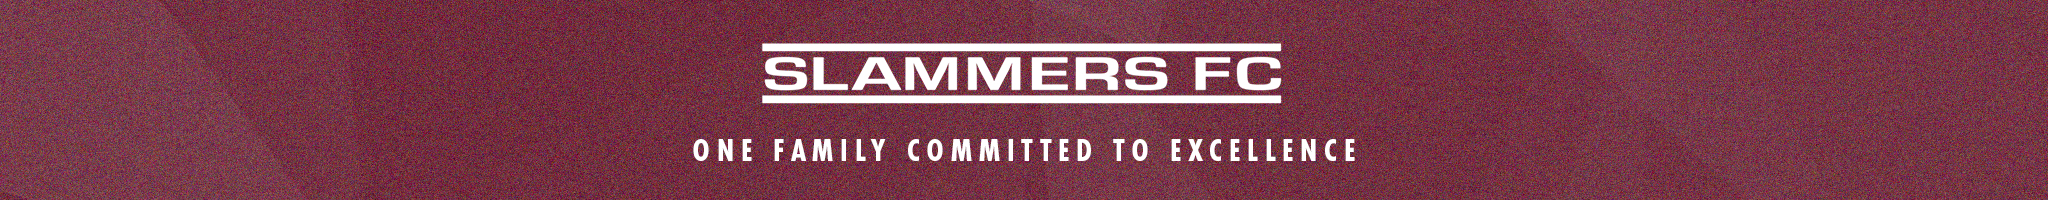 slammers fc one family committed to excellence